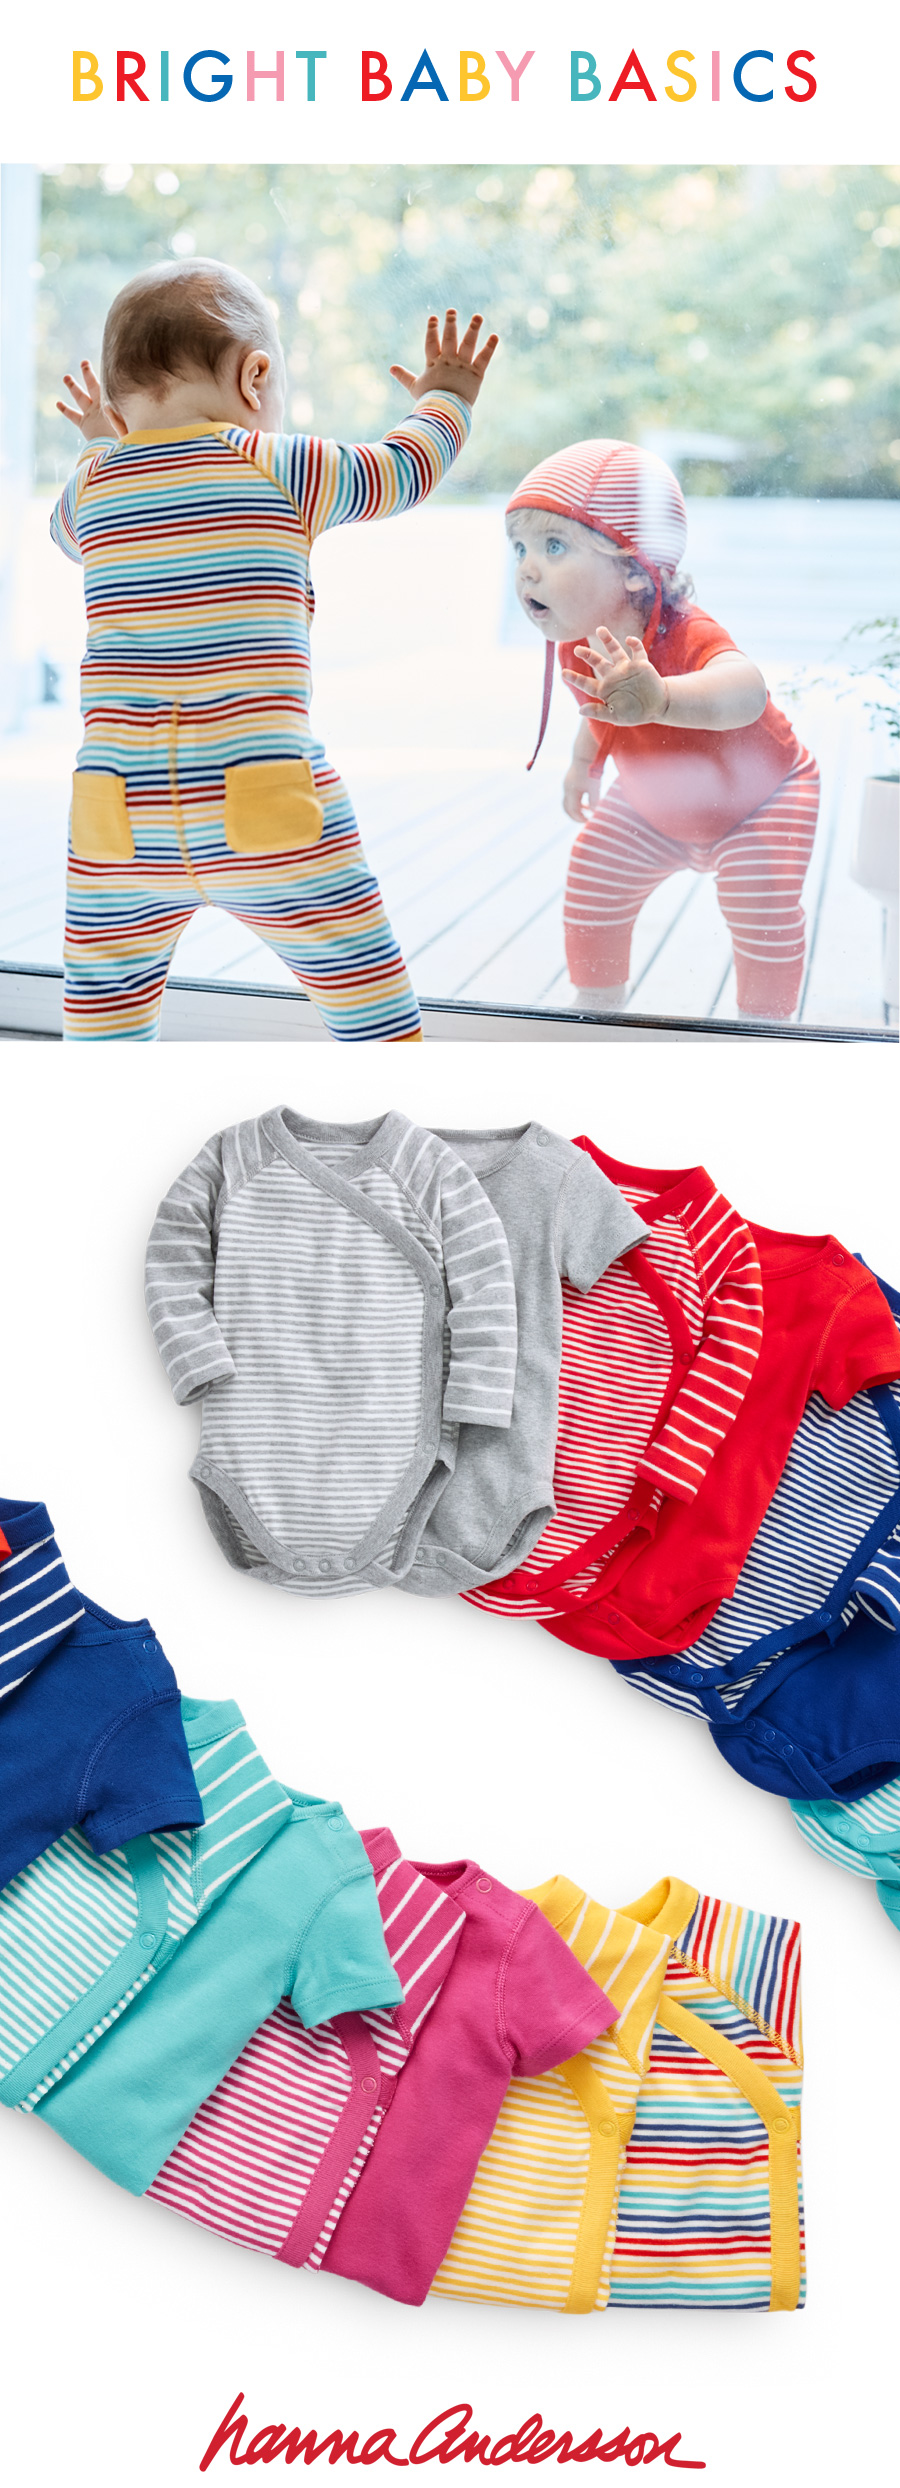 Organic Cotton New Baby Clothes - Bright Baby Basics - Hanna Andersson